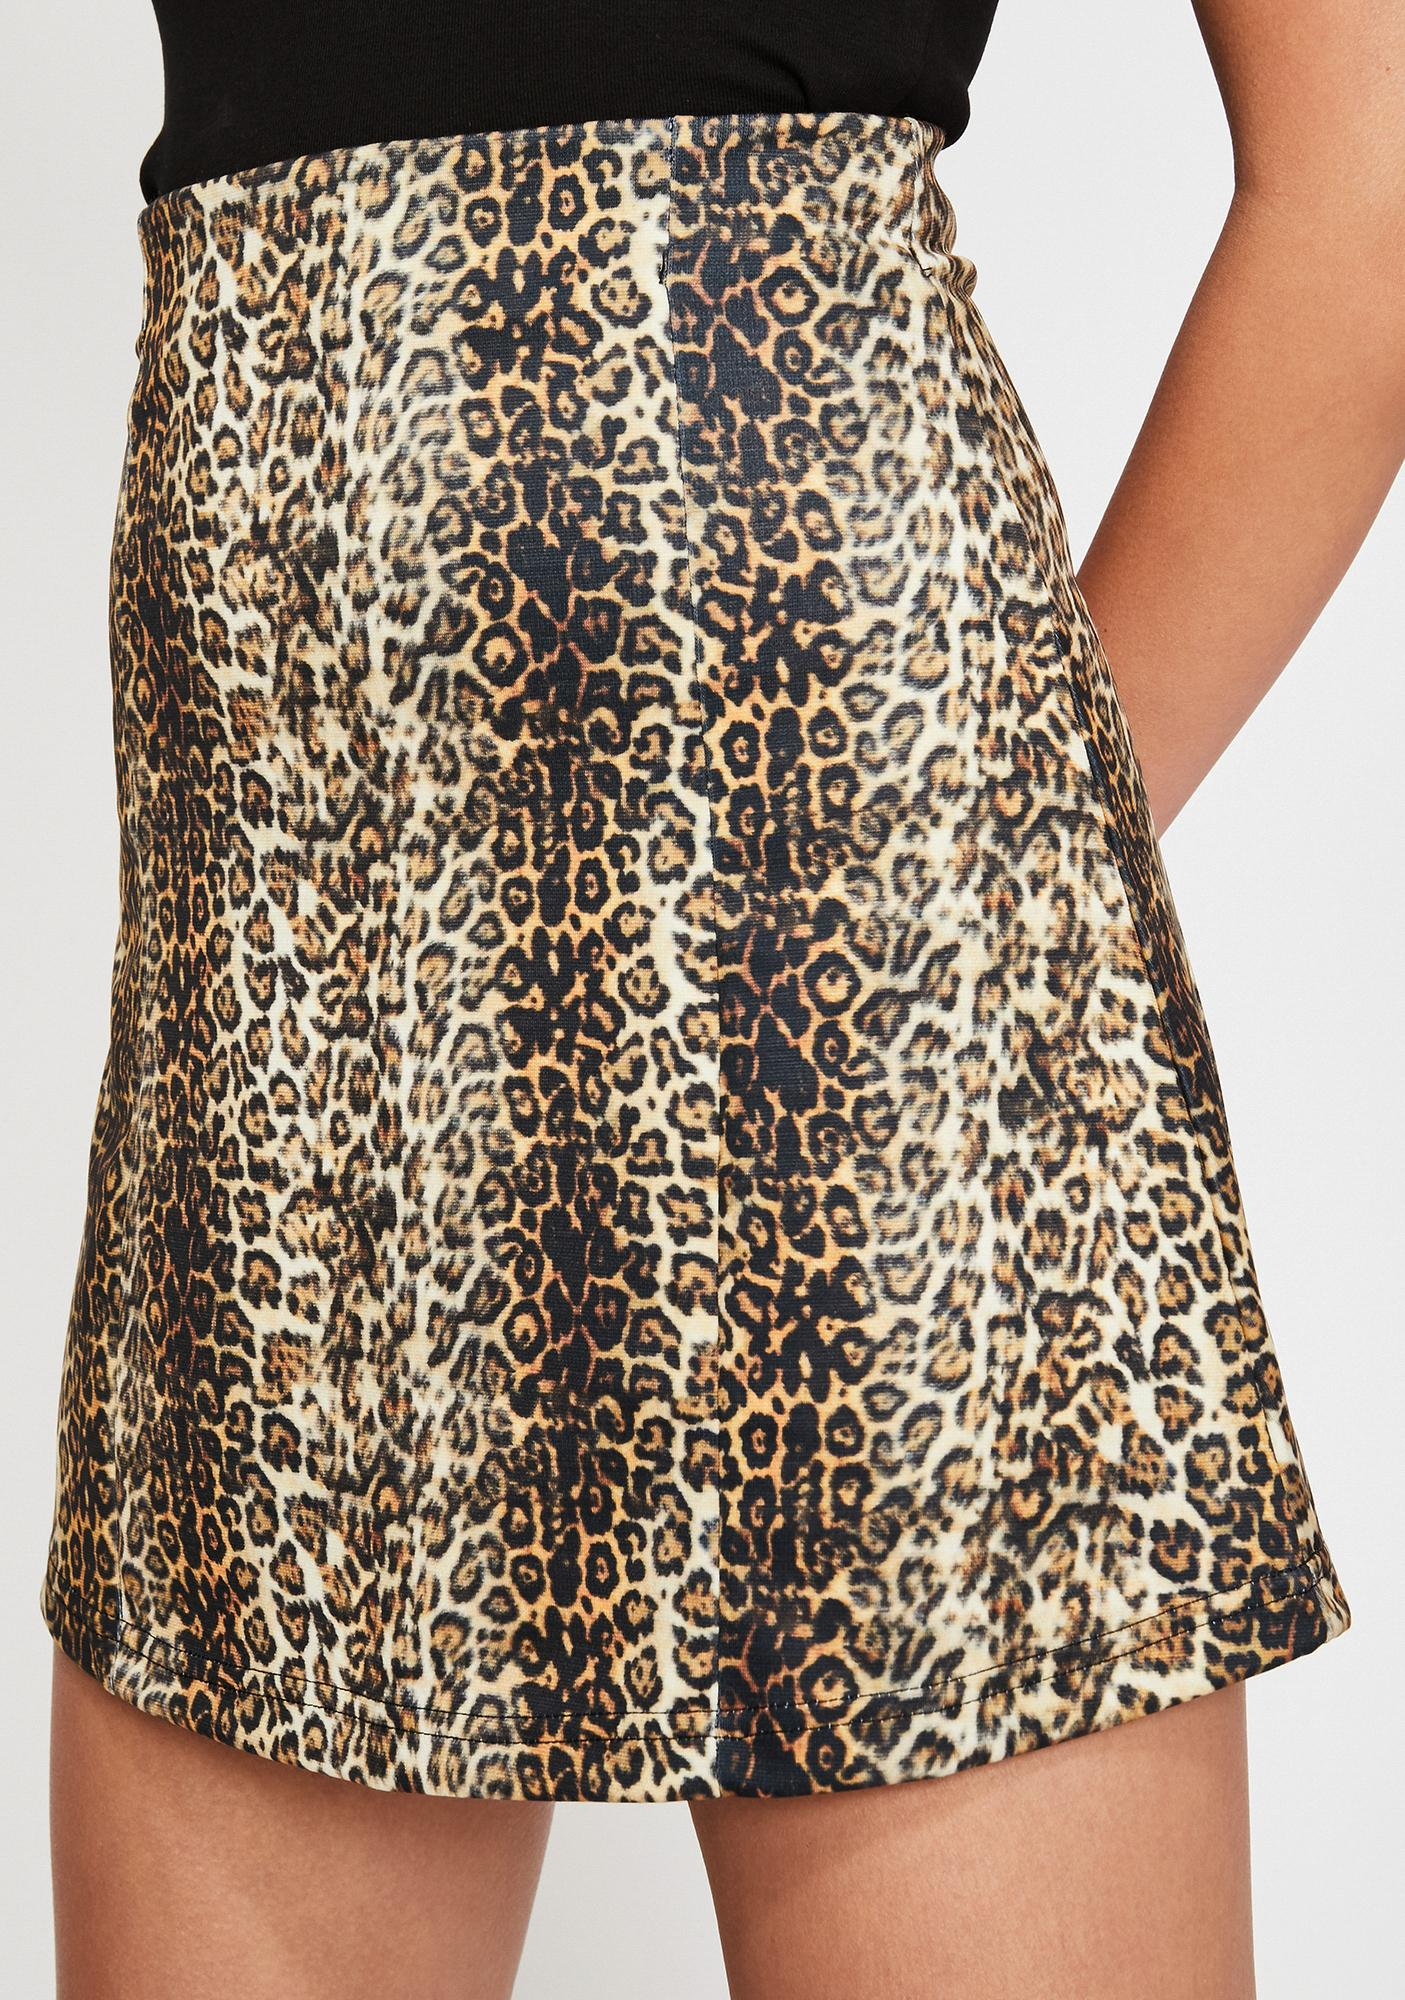 Current Mood Savannah Sav Leopard Skirt